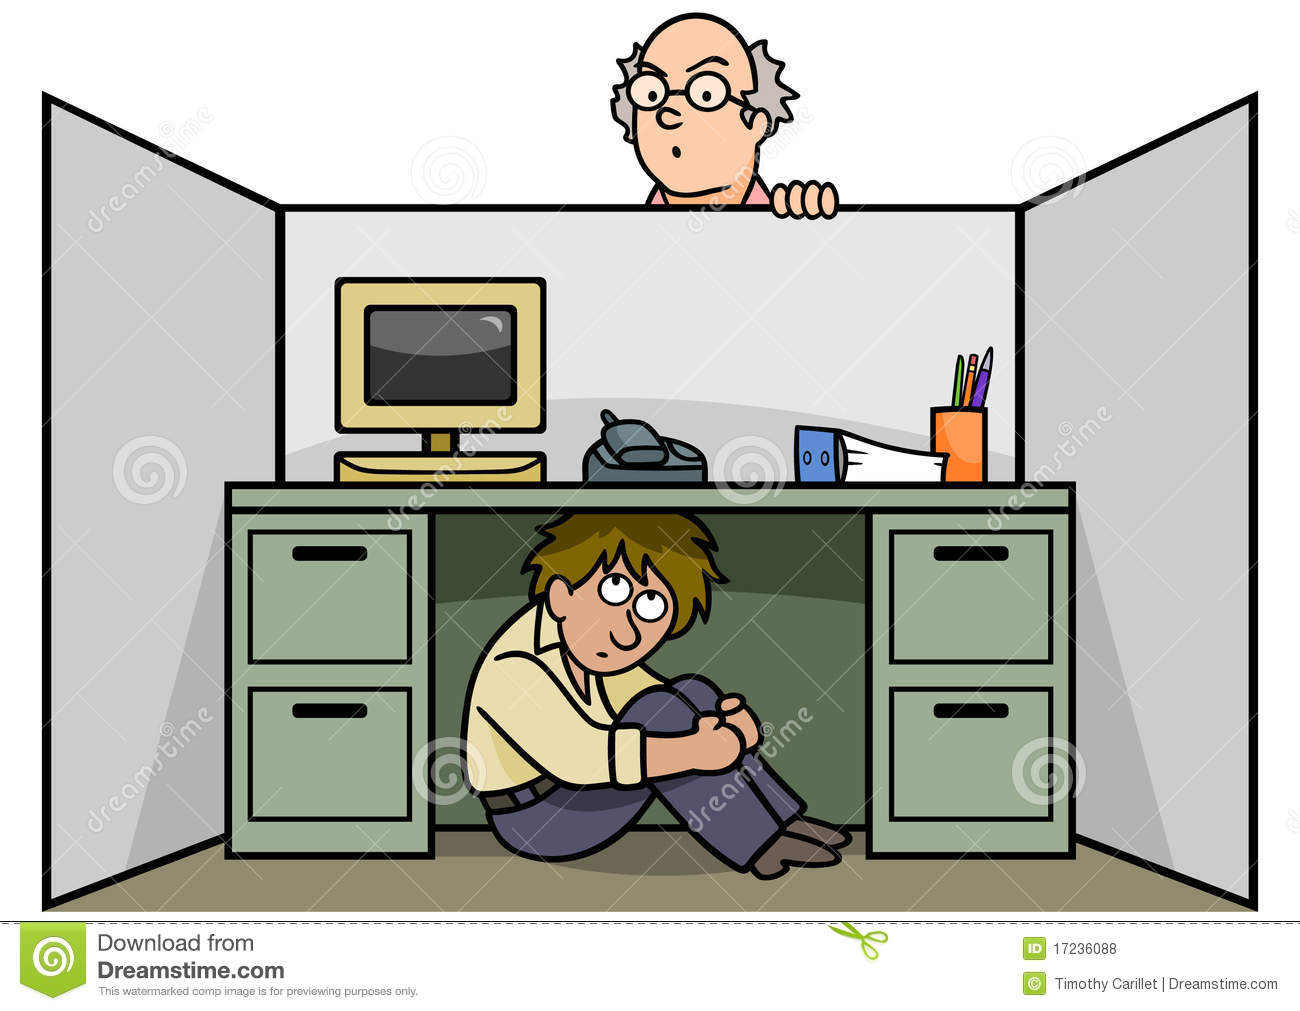 Hide under desk clipart.